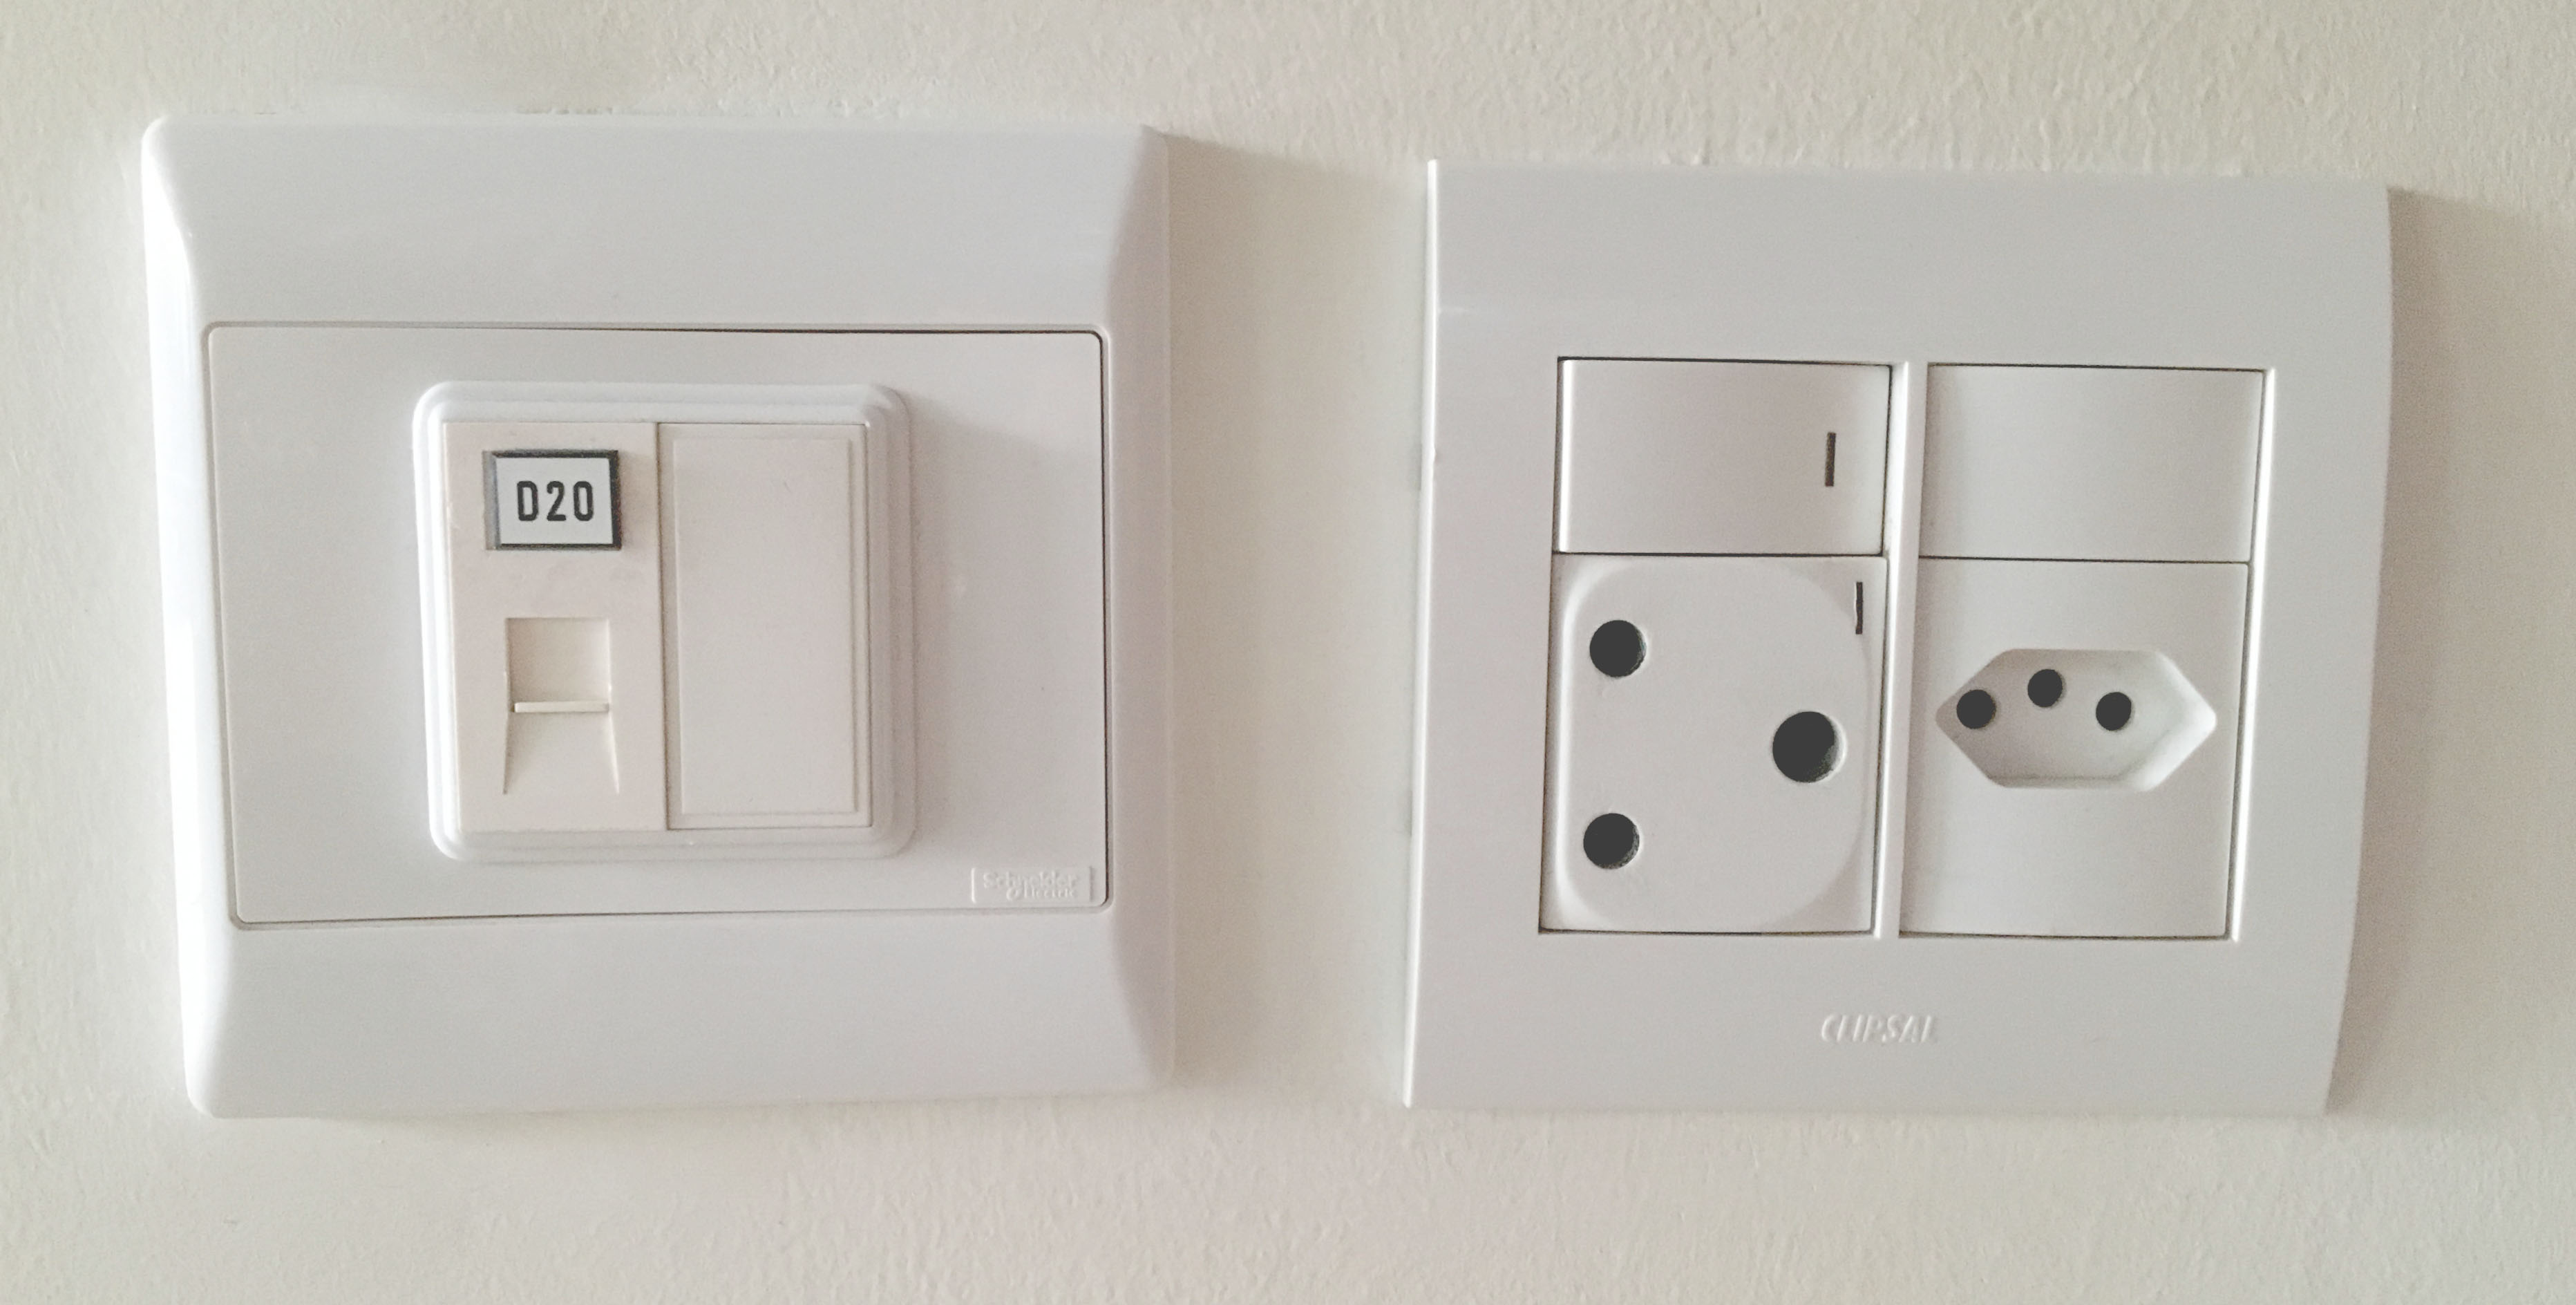 Network Points and Wall Electrical Socket